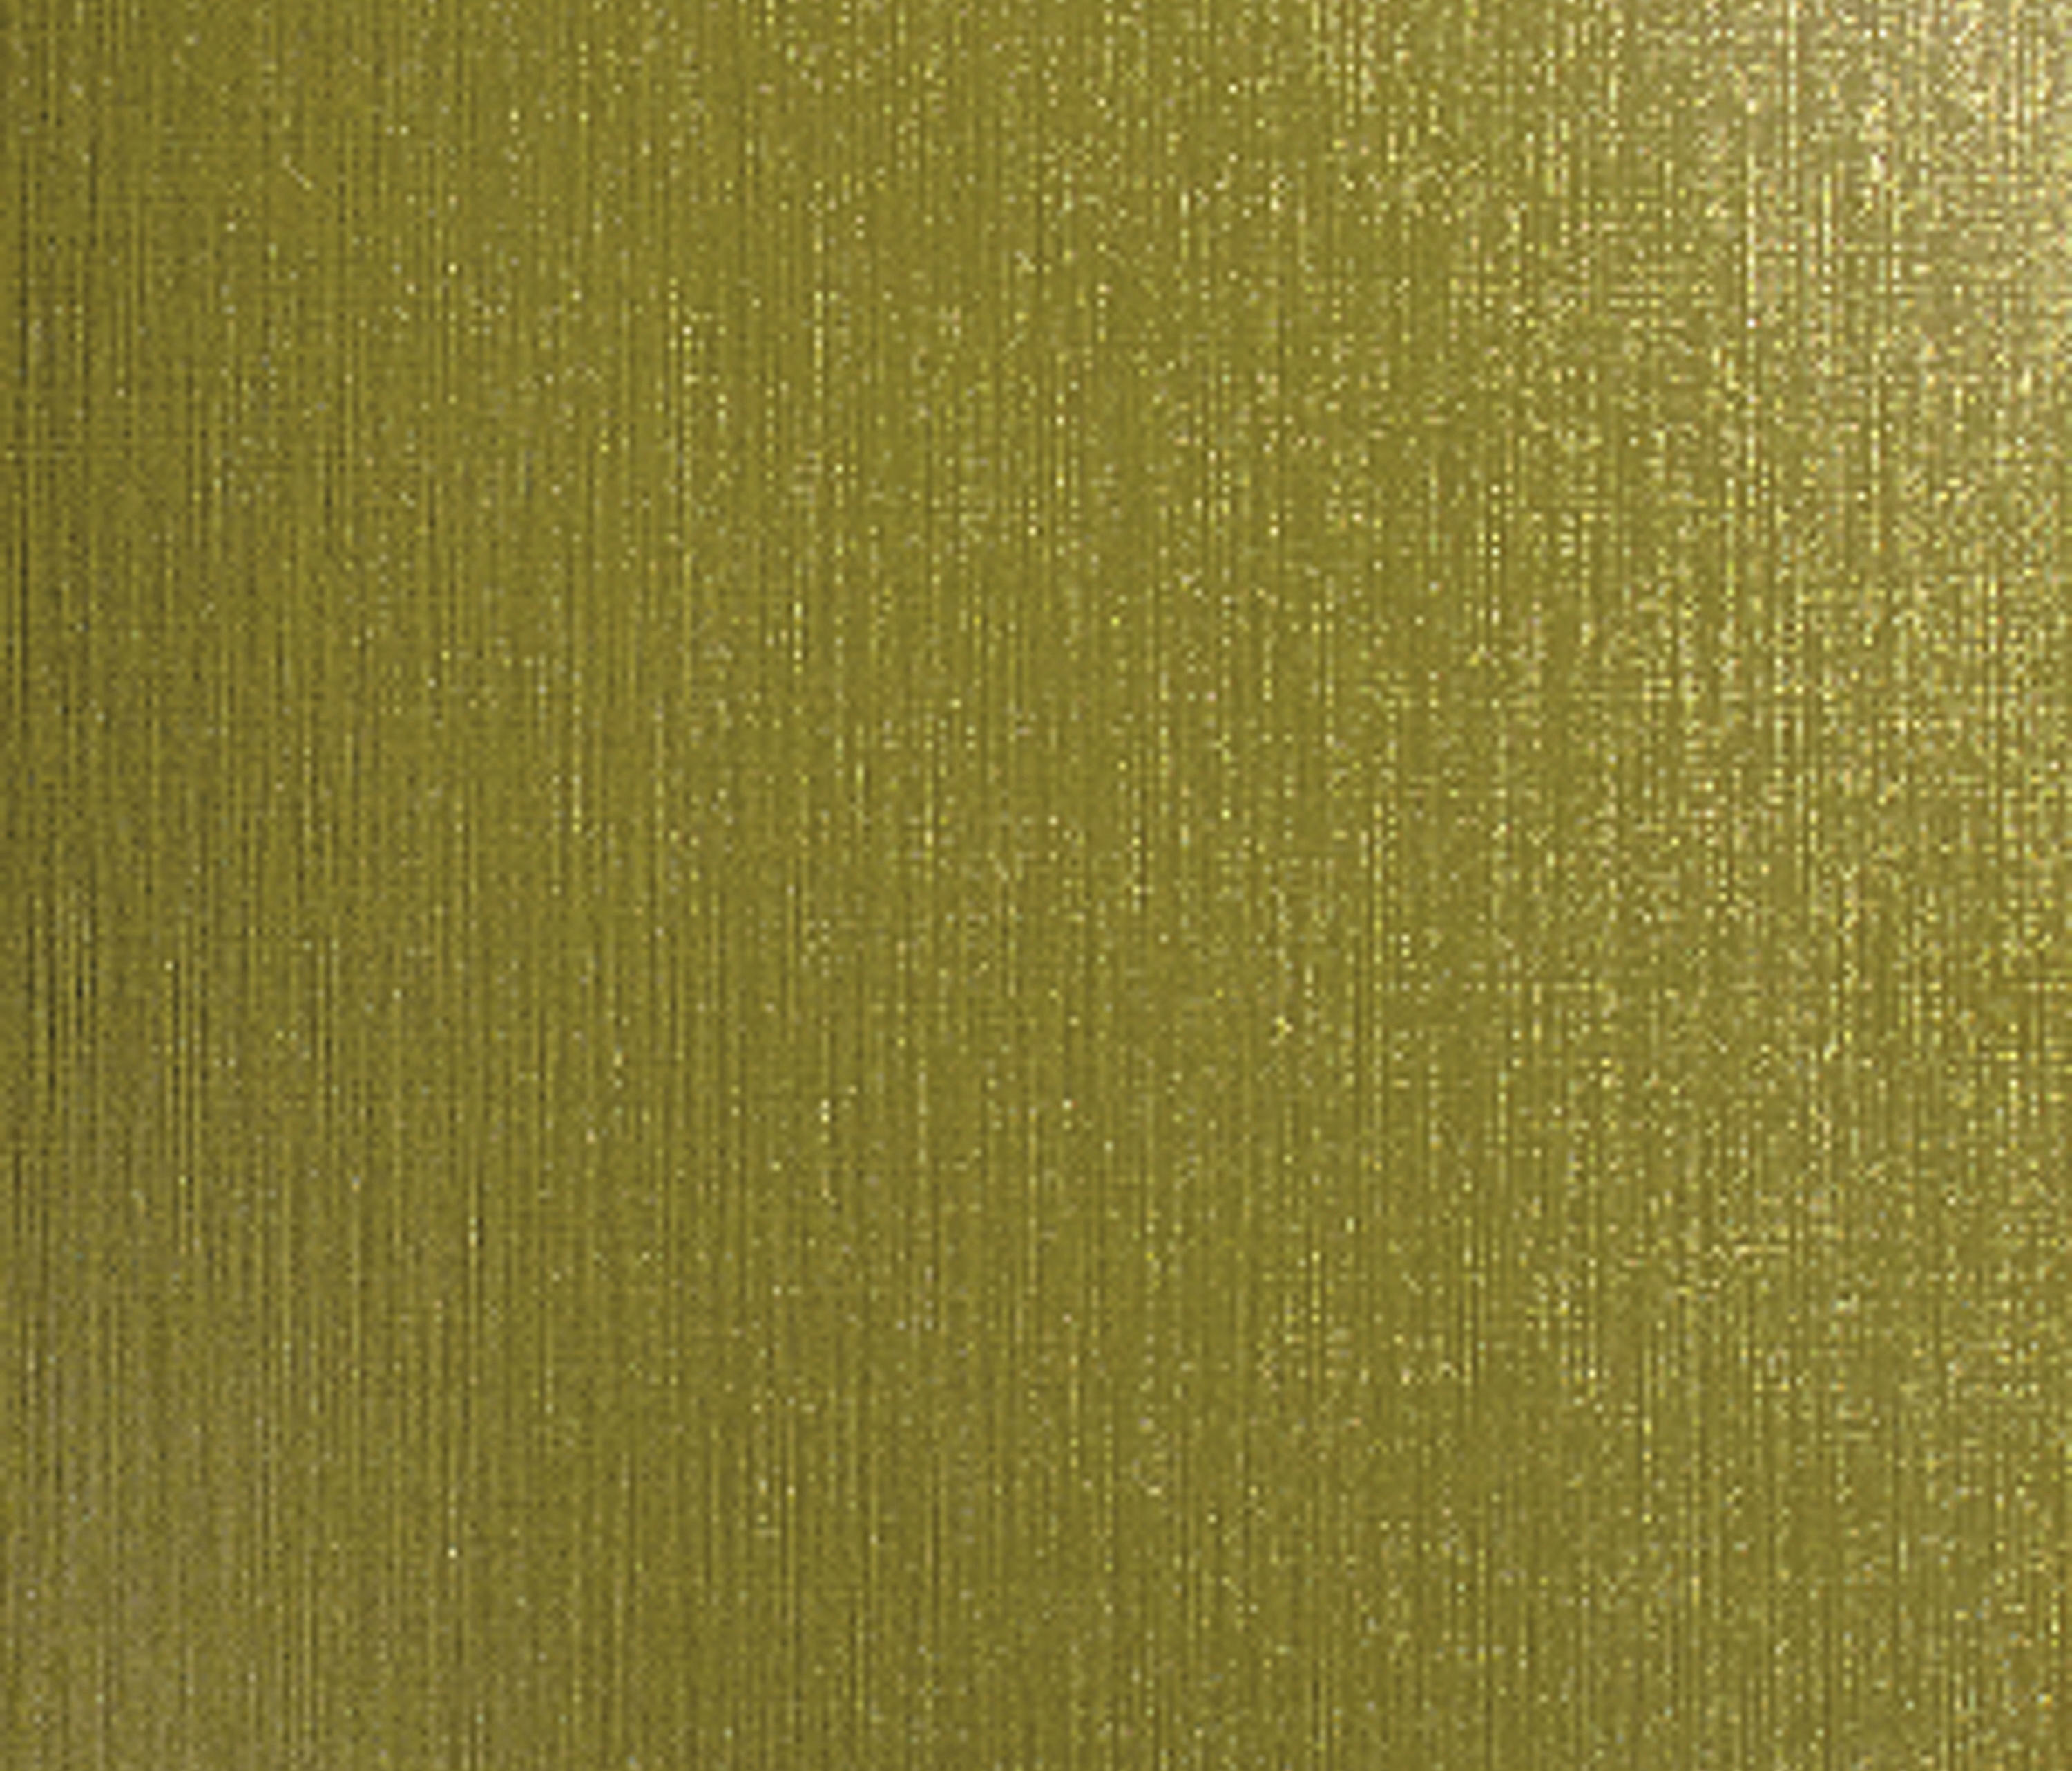 Loom Gold Ceramic Tiles From Alea Experience Architonic